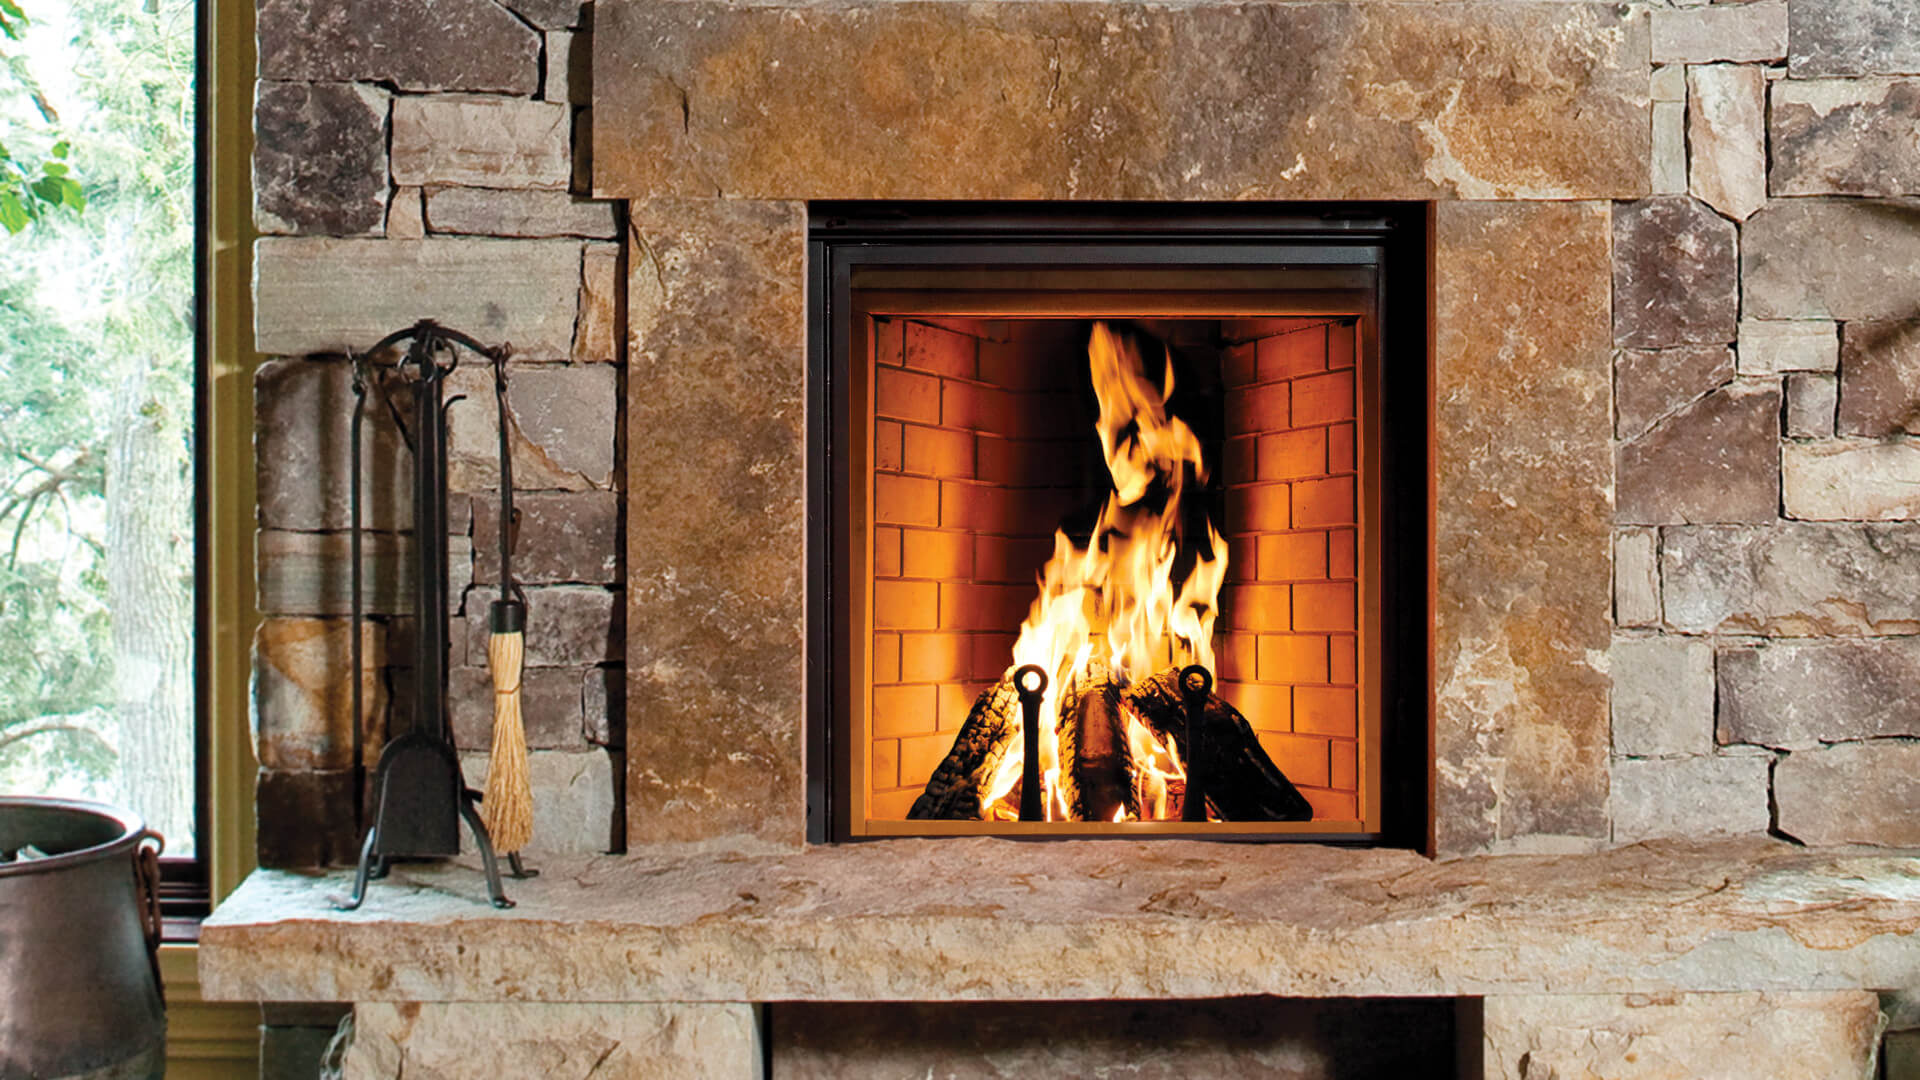 Renaissance Fireplaces Rumford 1000 Wood Burning